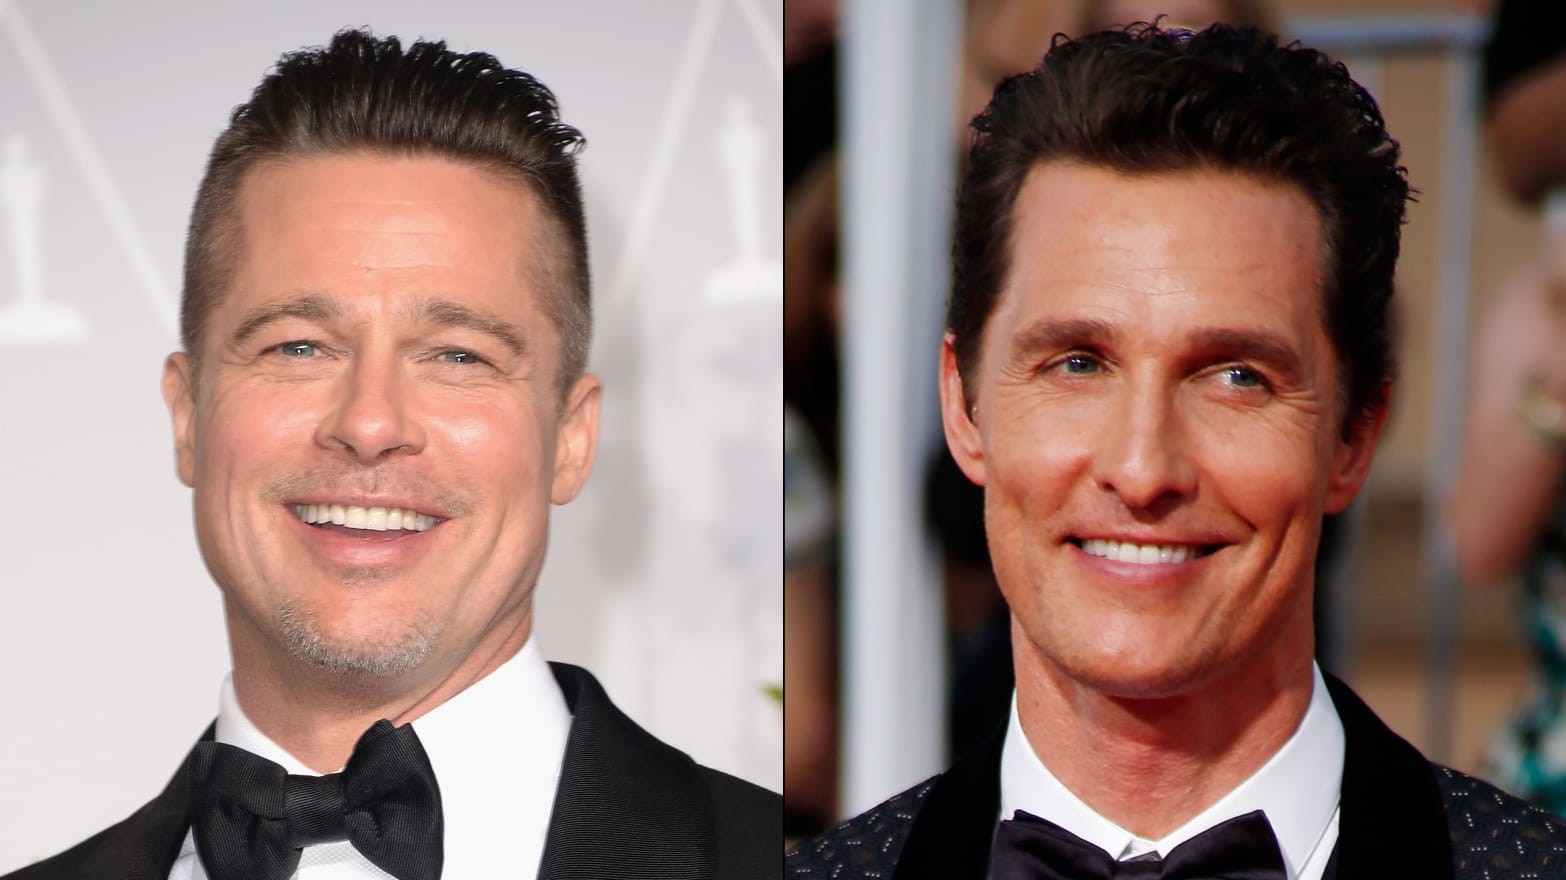 Viral Video Of The Day Brad Pitt Throws Beer To Matthew Mcconaughey